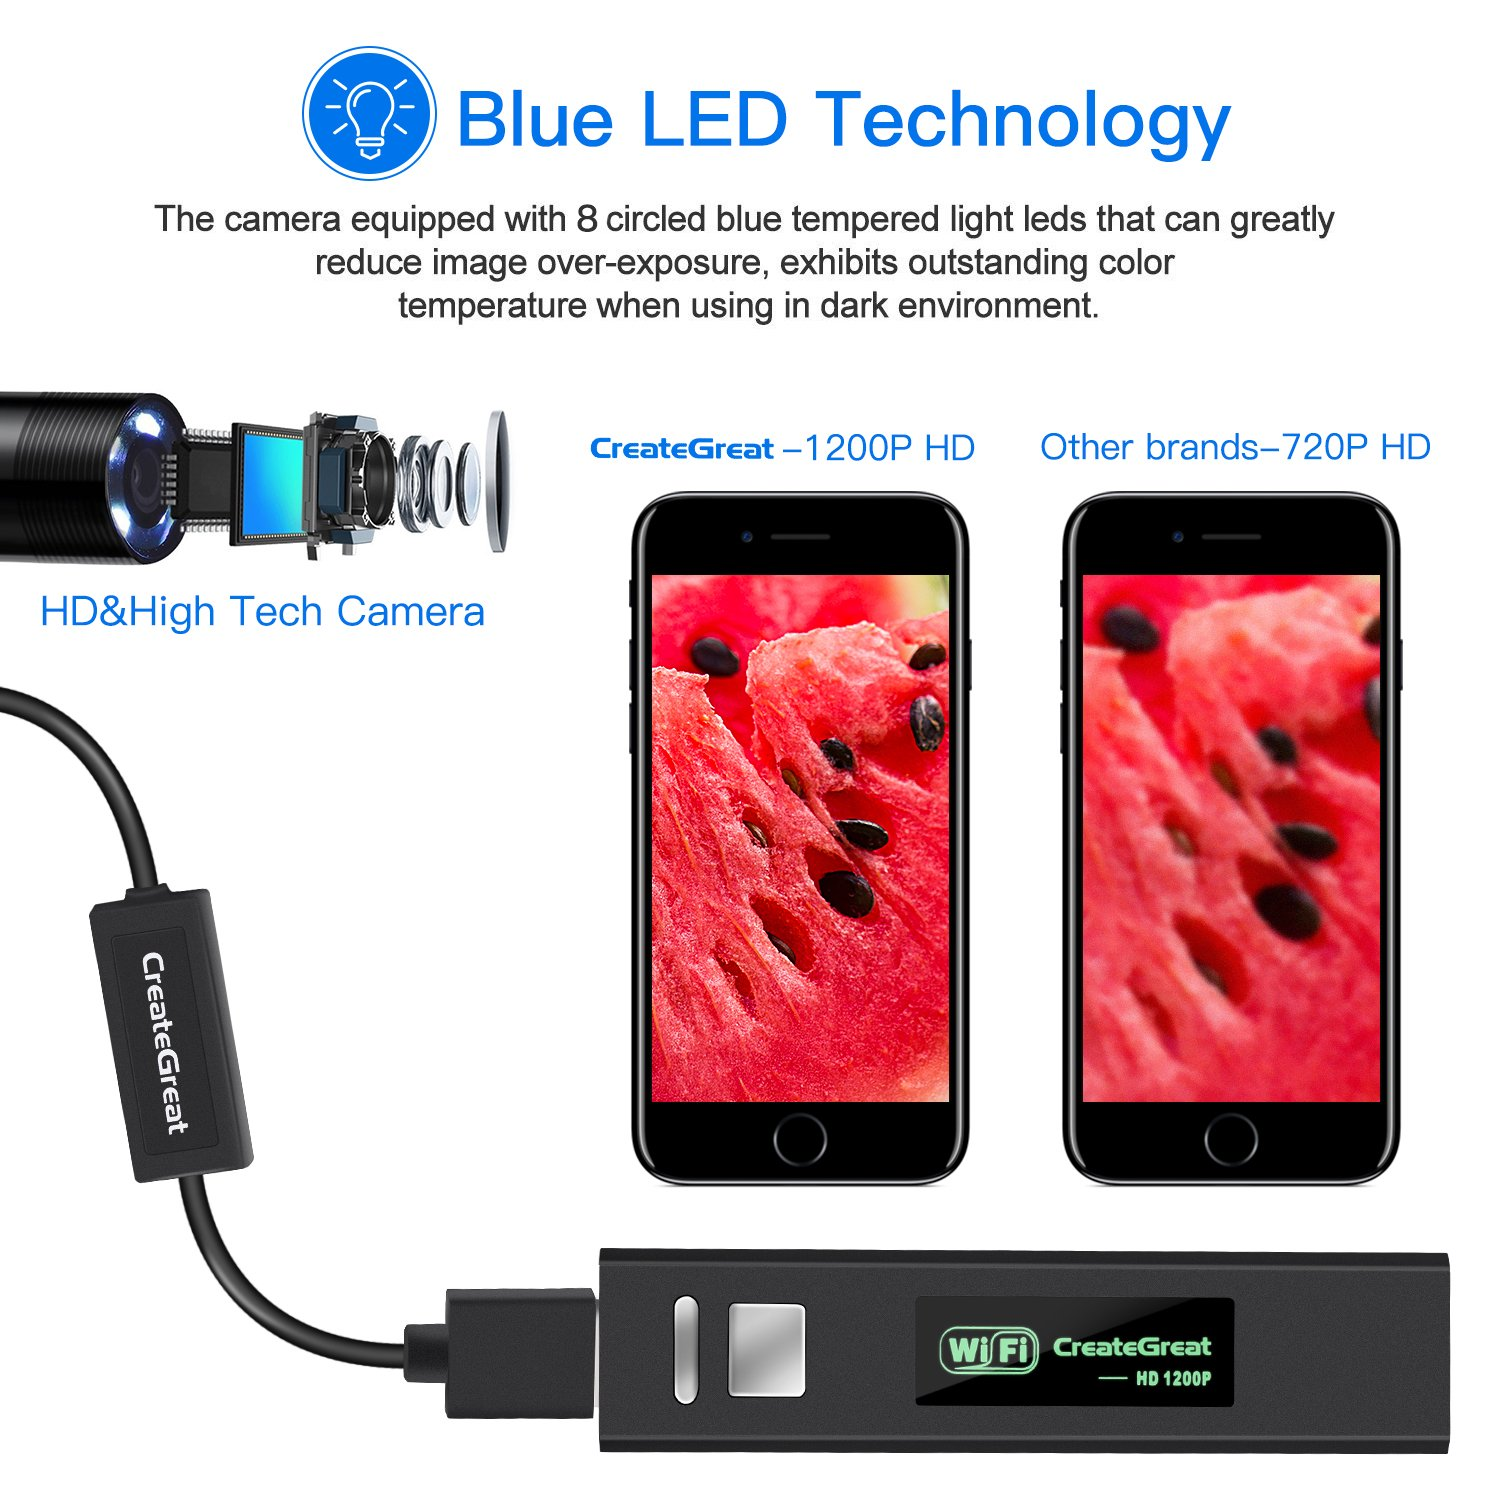 Wireless Endoscope,CreateGreat WiFi Borescope Inspection Camera 2.0 Megapixels 1200P HD Snake Camera with Top rated 8 pcs Adjustable Blue LED Technology for Android and IOS Smartphone,Iphone,Samsung,Macbook,Tablet to do Inspection Work